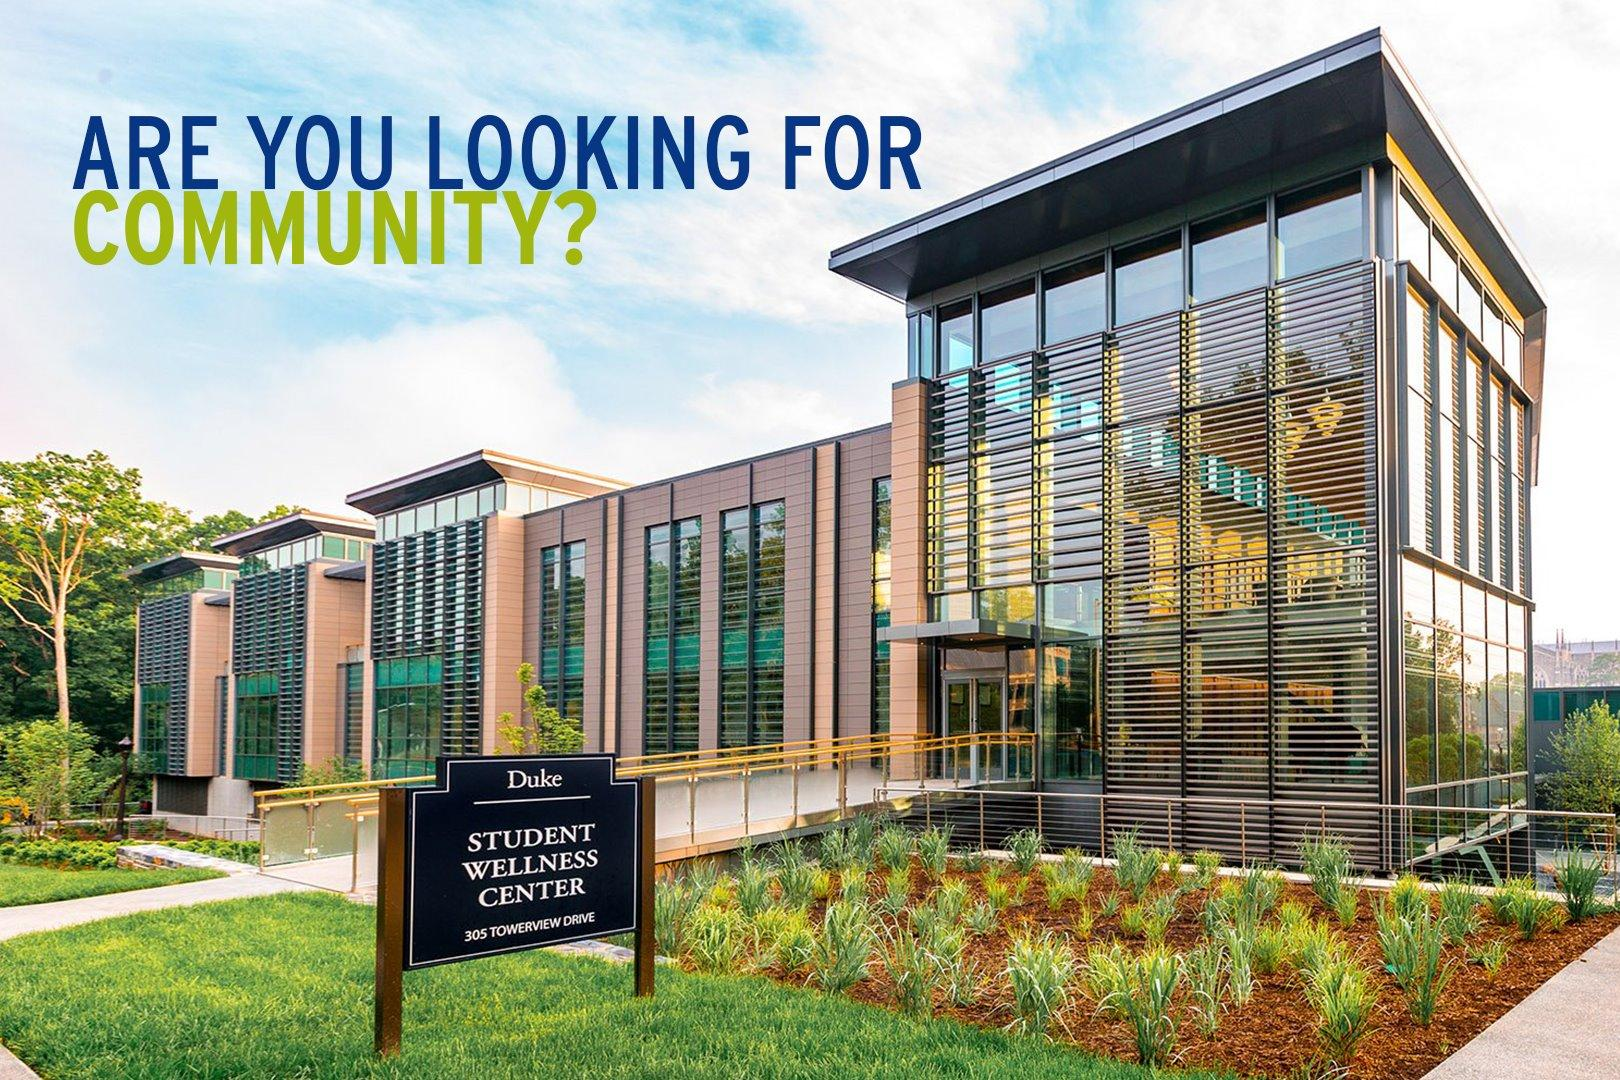 Are you looking for community? Picture of the Student Wellness Center